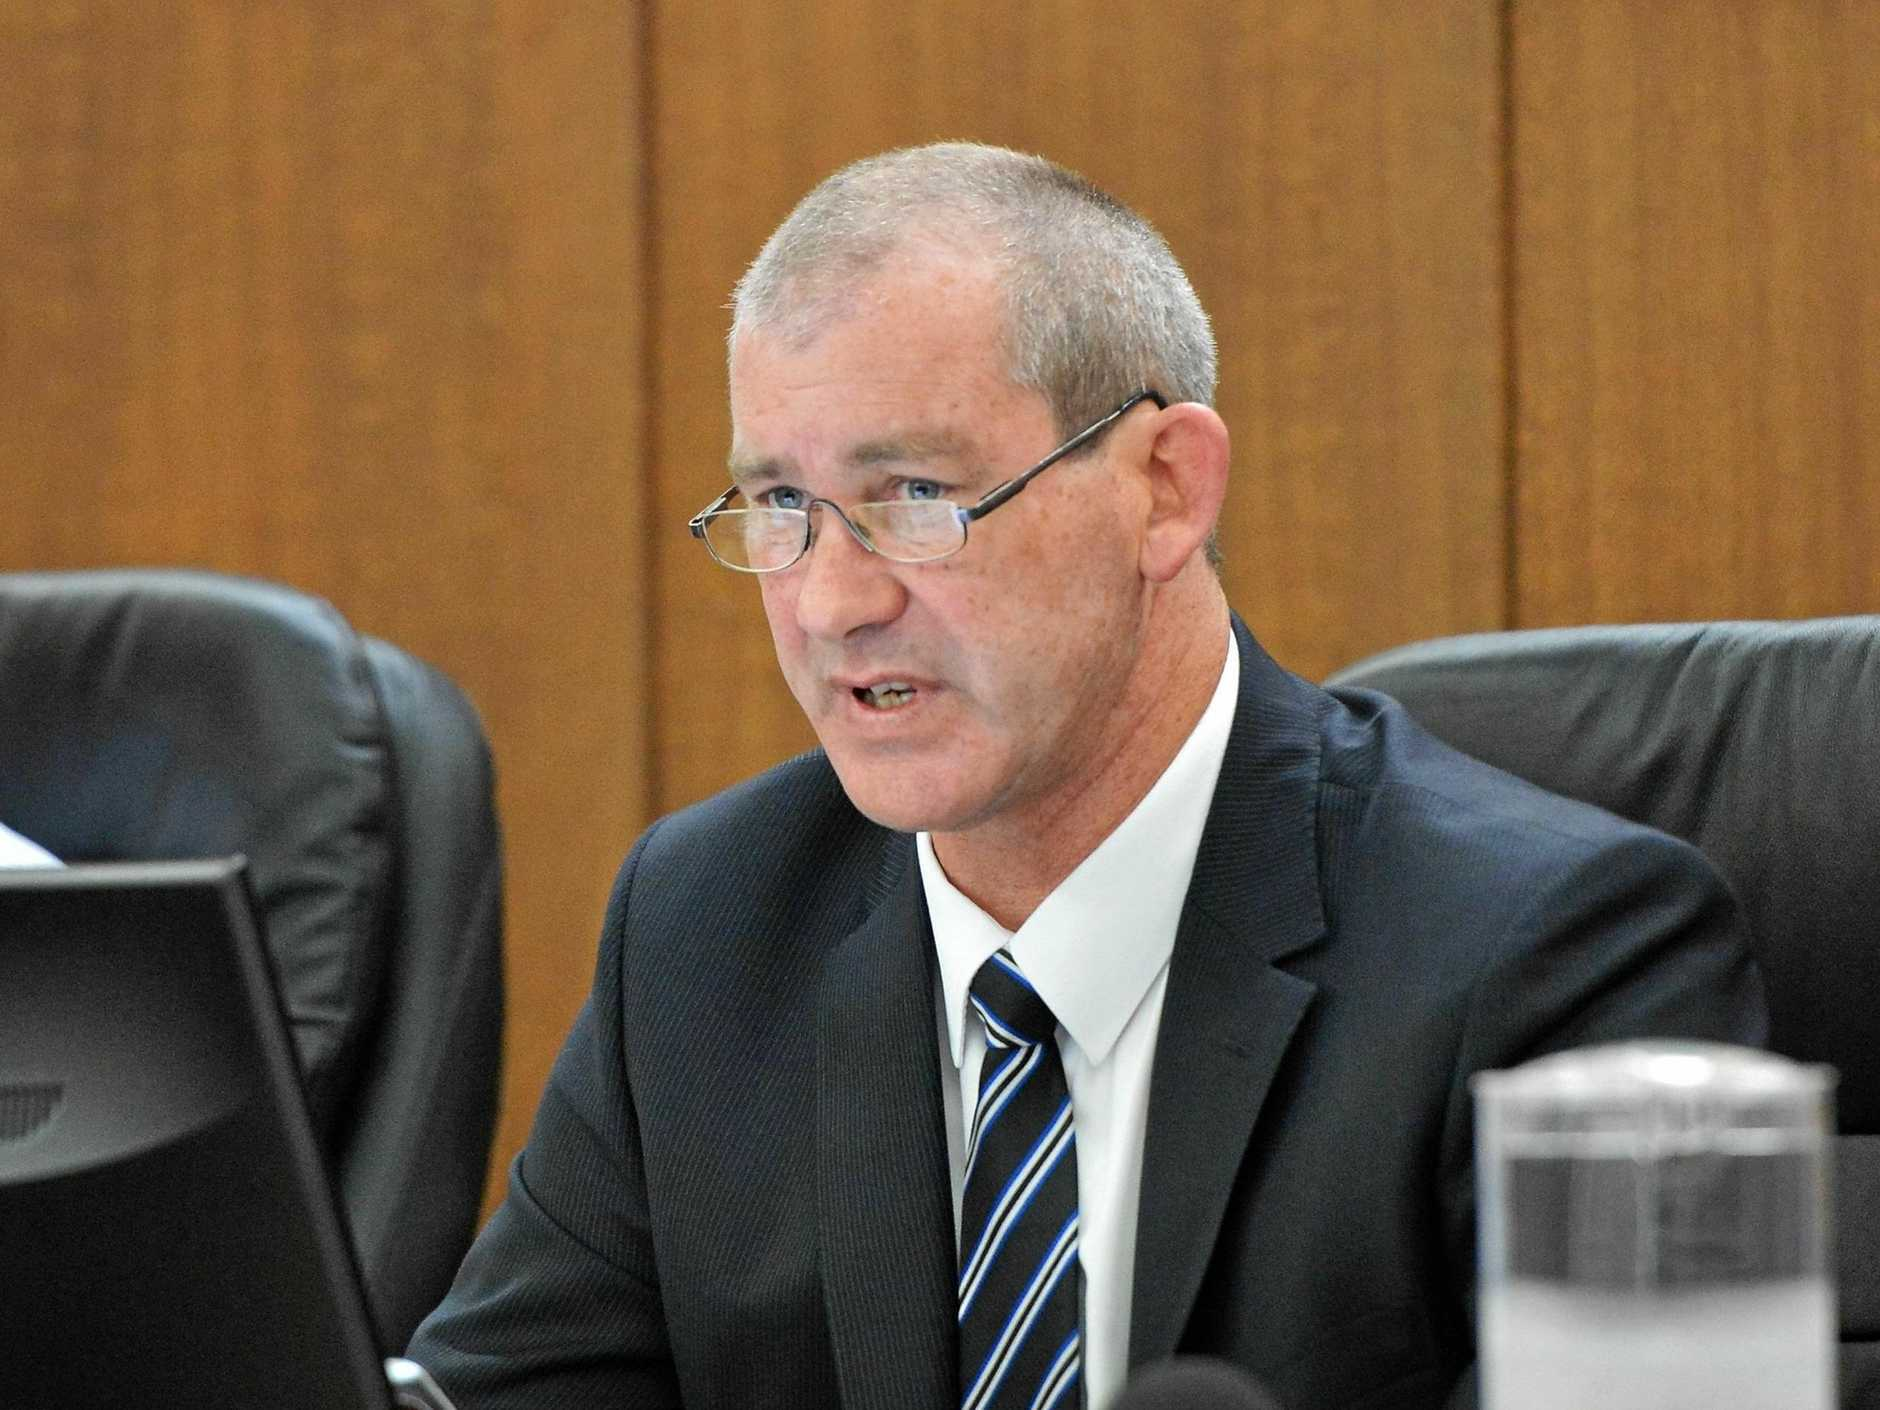 Gympie Regional Council Mayor Mick Curran.